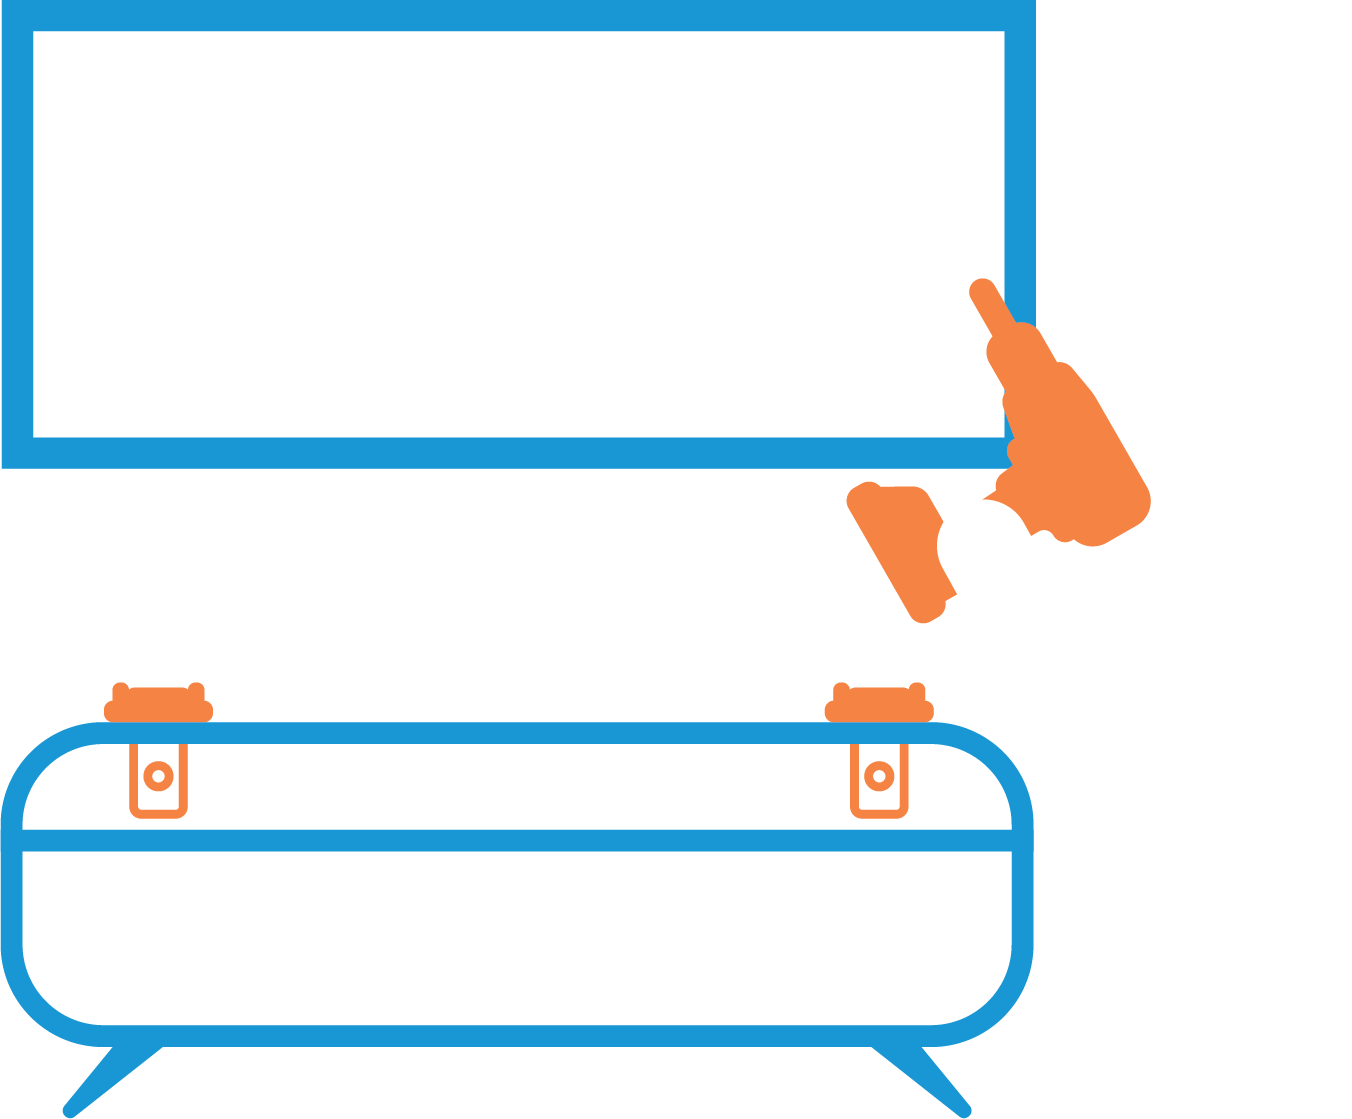 Secure Your Space logo in color